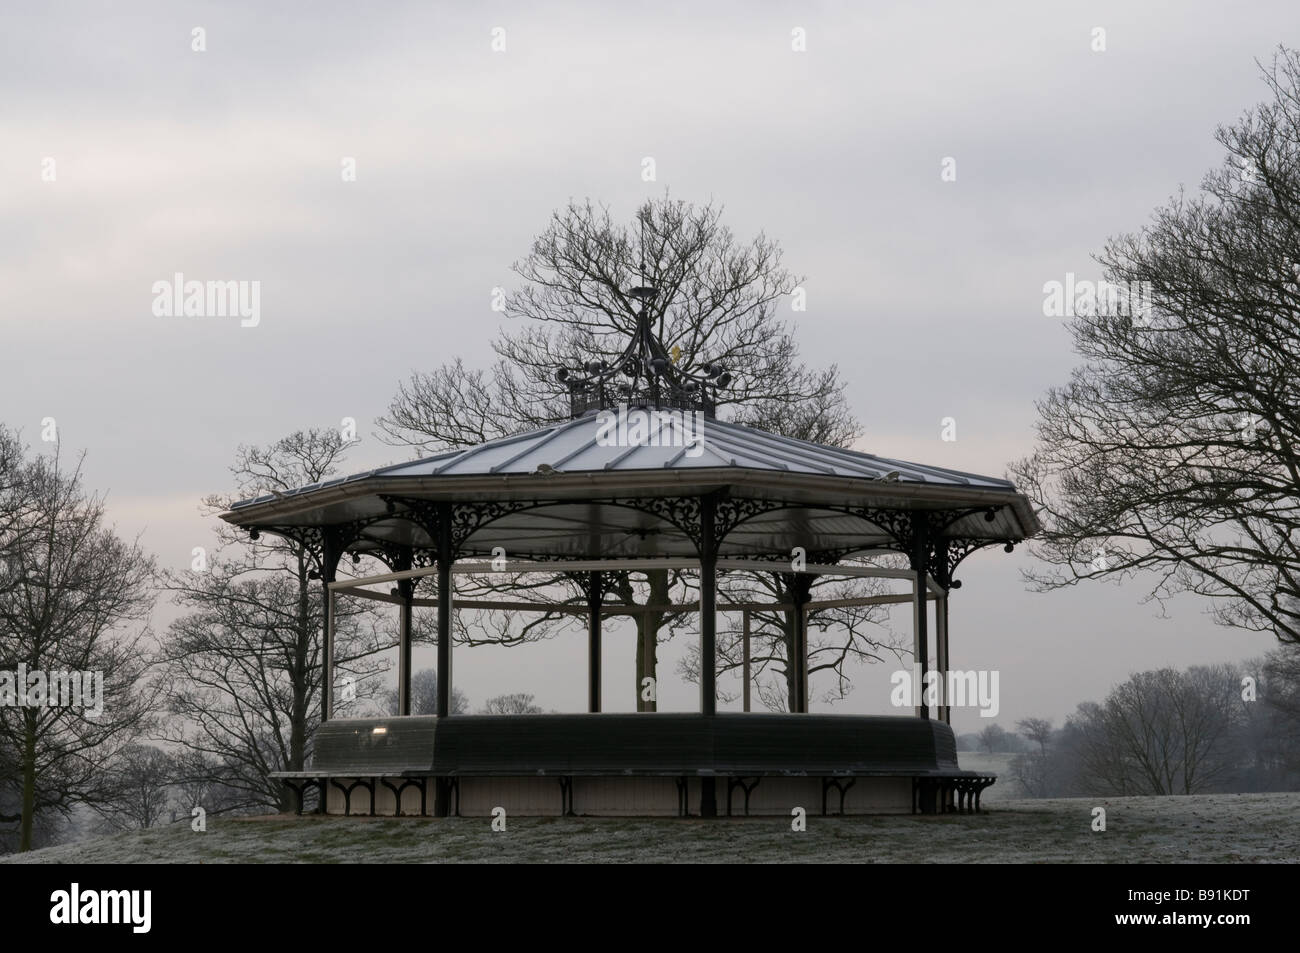 The Victorian bandstand in Roundhay Park, Leeds, England, covered in frost in the winter Stock Photo